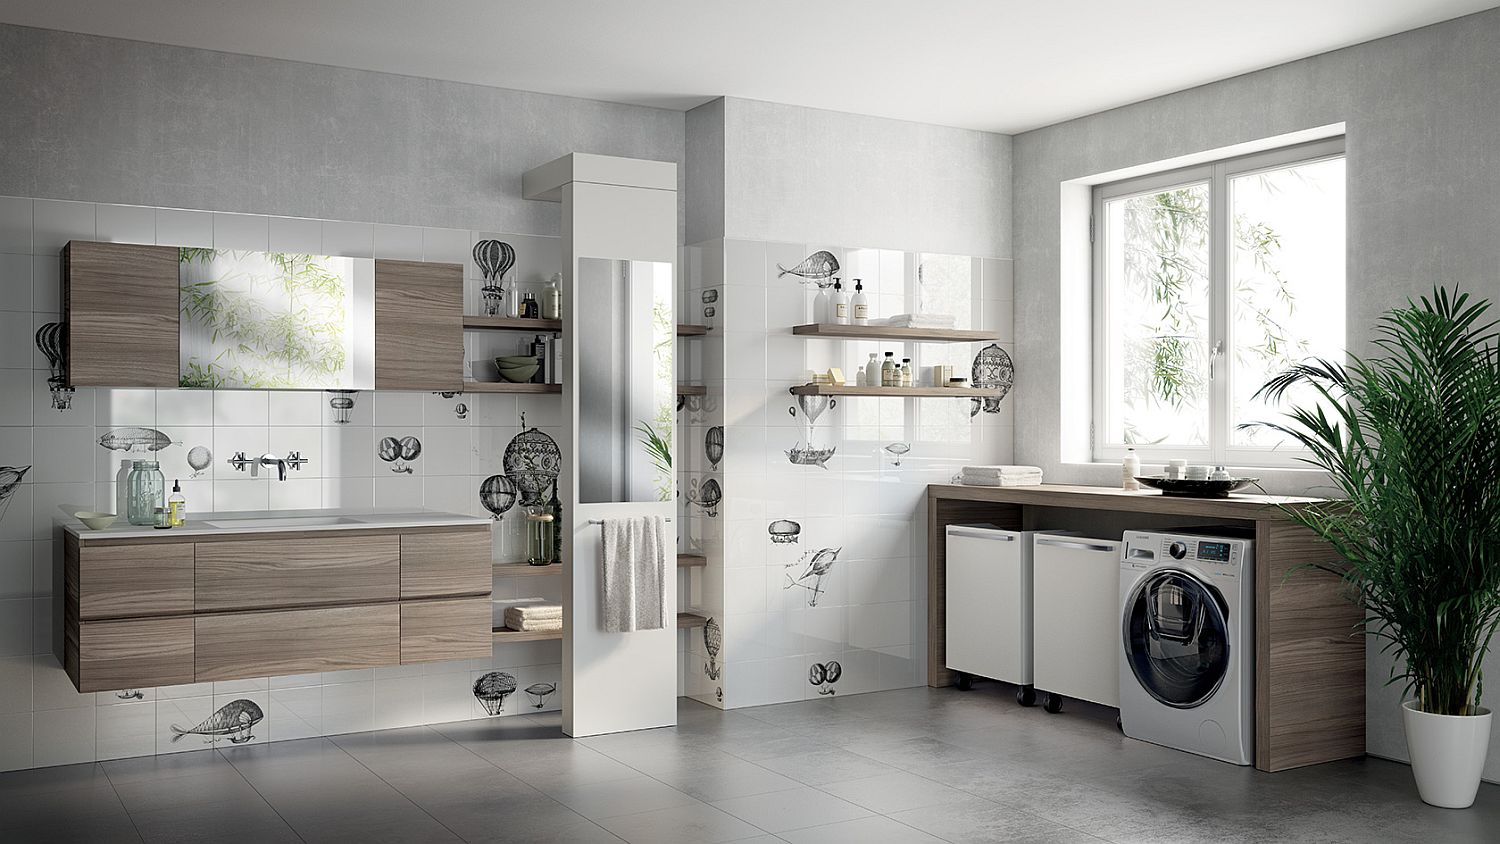 Laundry room and bathroom combo designs - View In Gallery Rivo Bathroom Combined With Ingenious Laundry